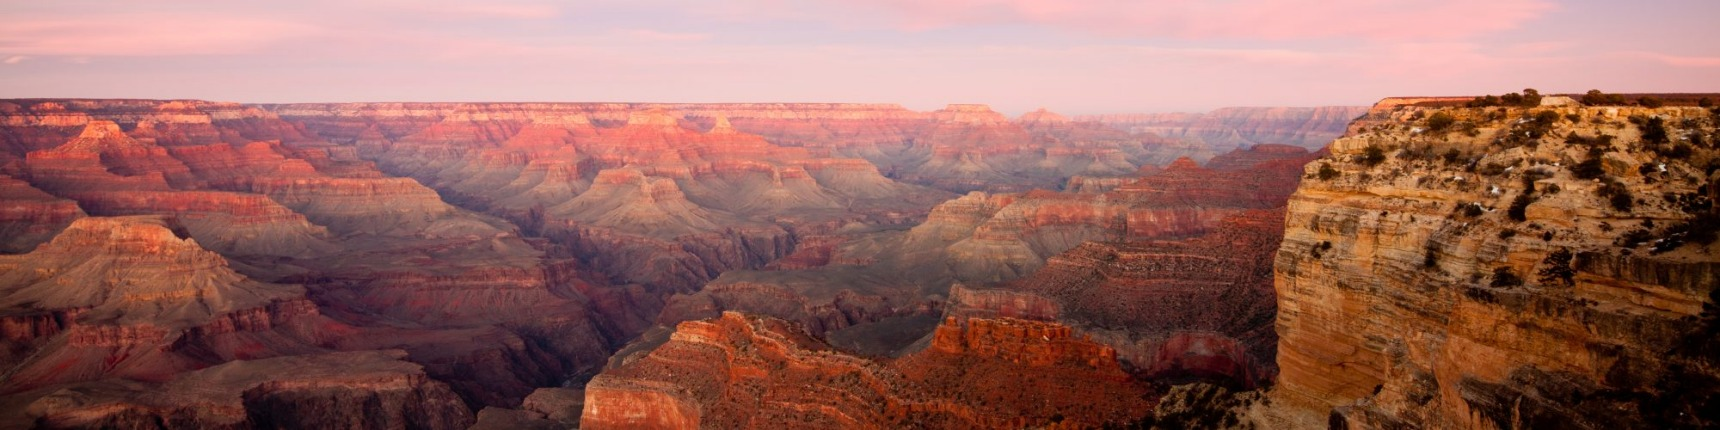 North America Grand Canyon